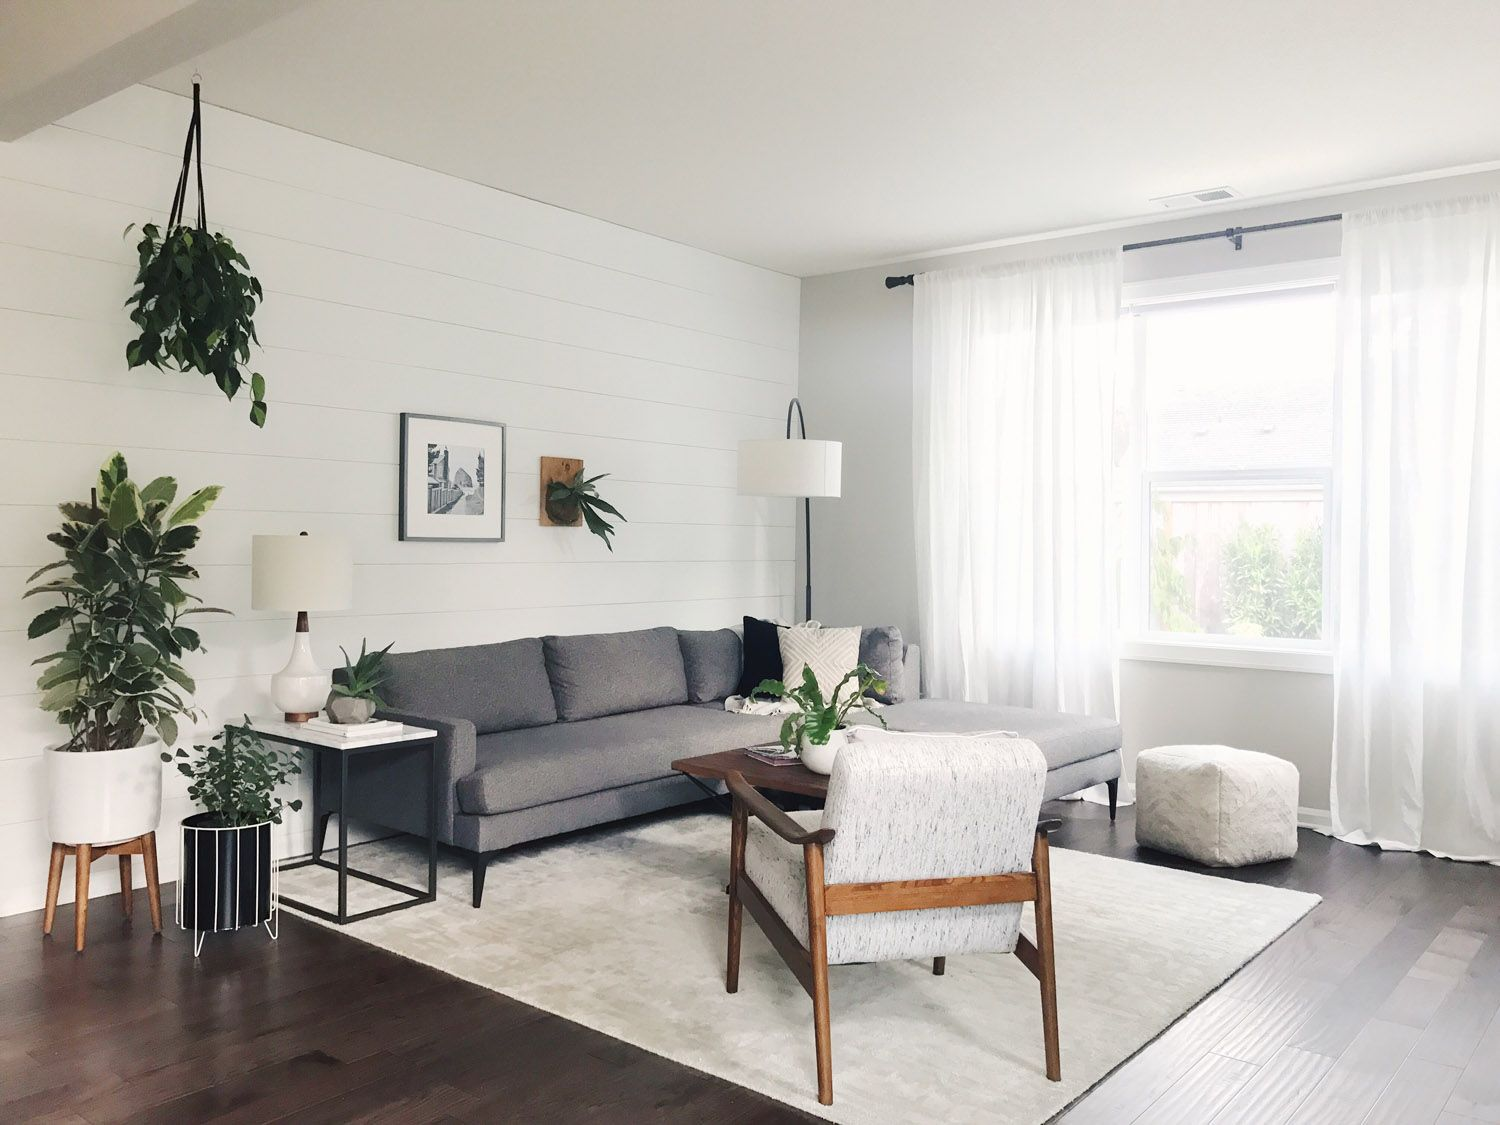 west elm - A Functional, Timeless Home In Portland | living room ...